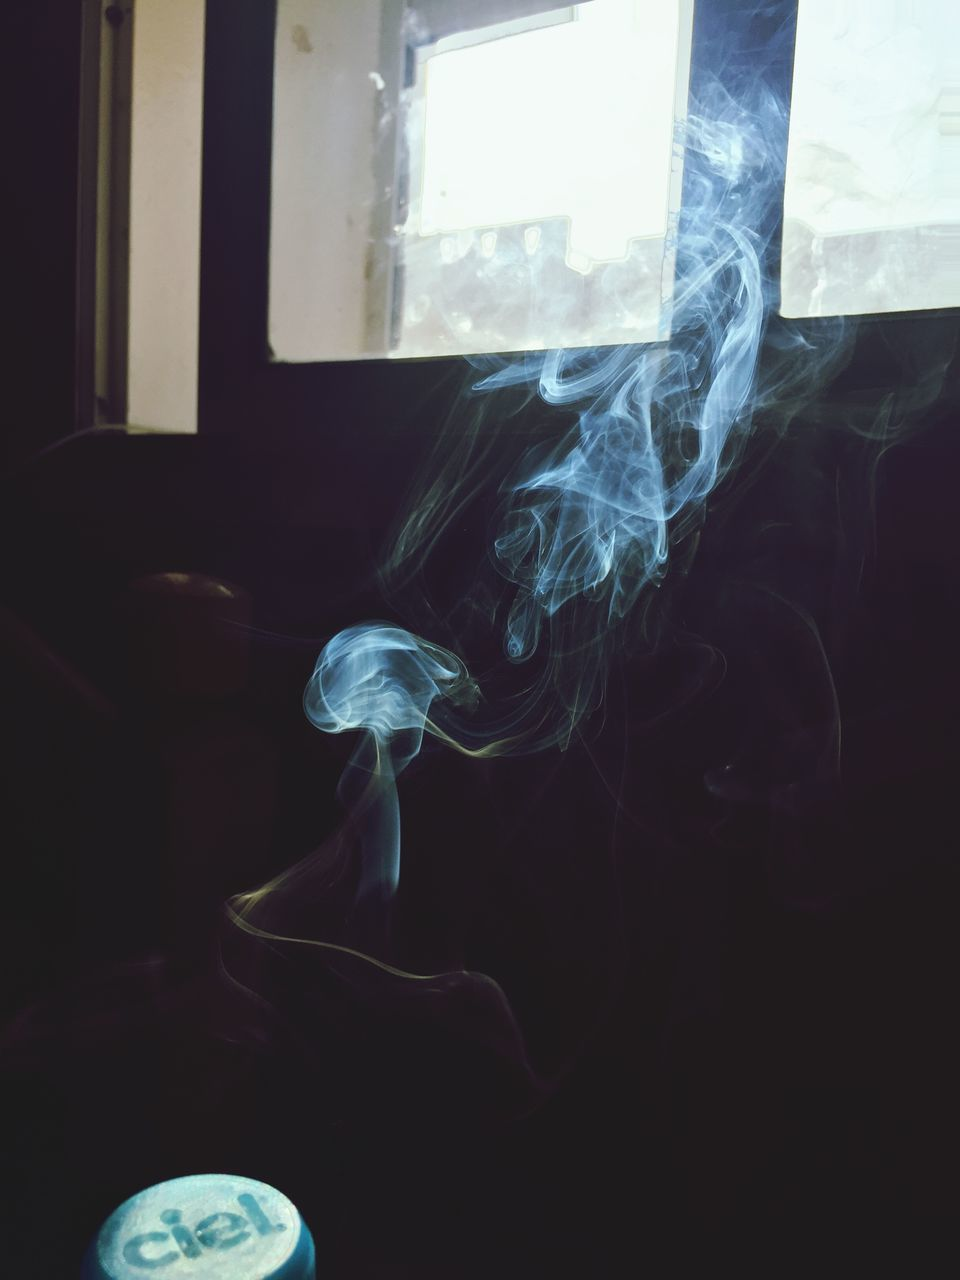 smoke - physical structure, indoors, real people, window, one person, close-up, day, people